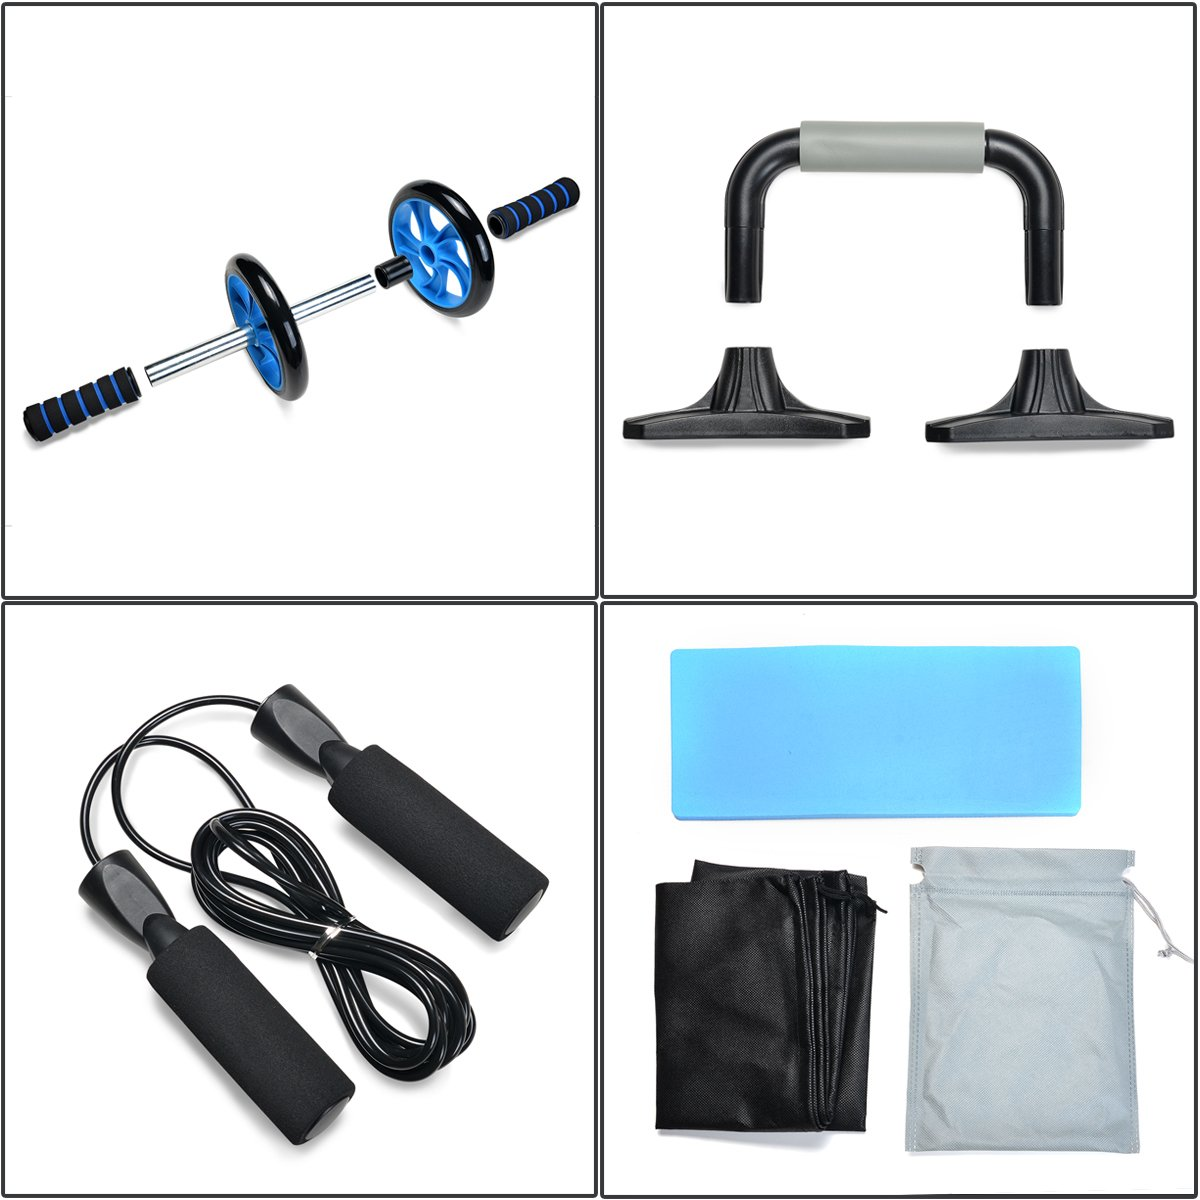 Jump Rope ... Odoland 3-in-1 AB Wheel Roller Kit AB Roller Pro with Push-Up Bar